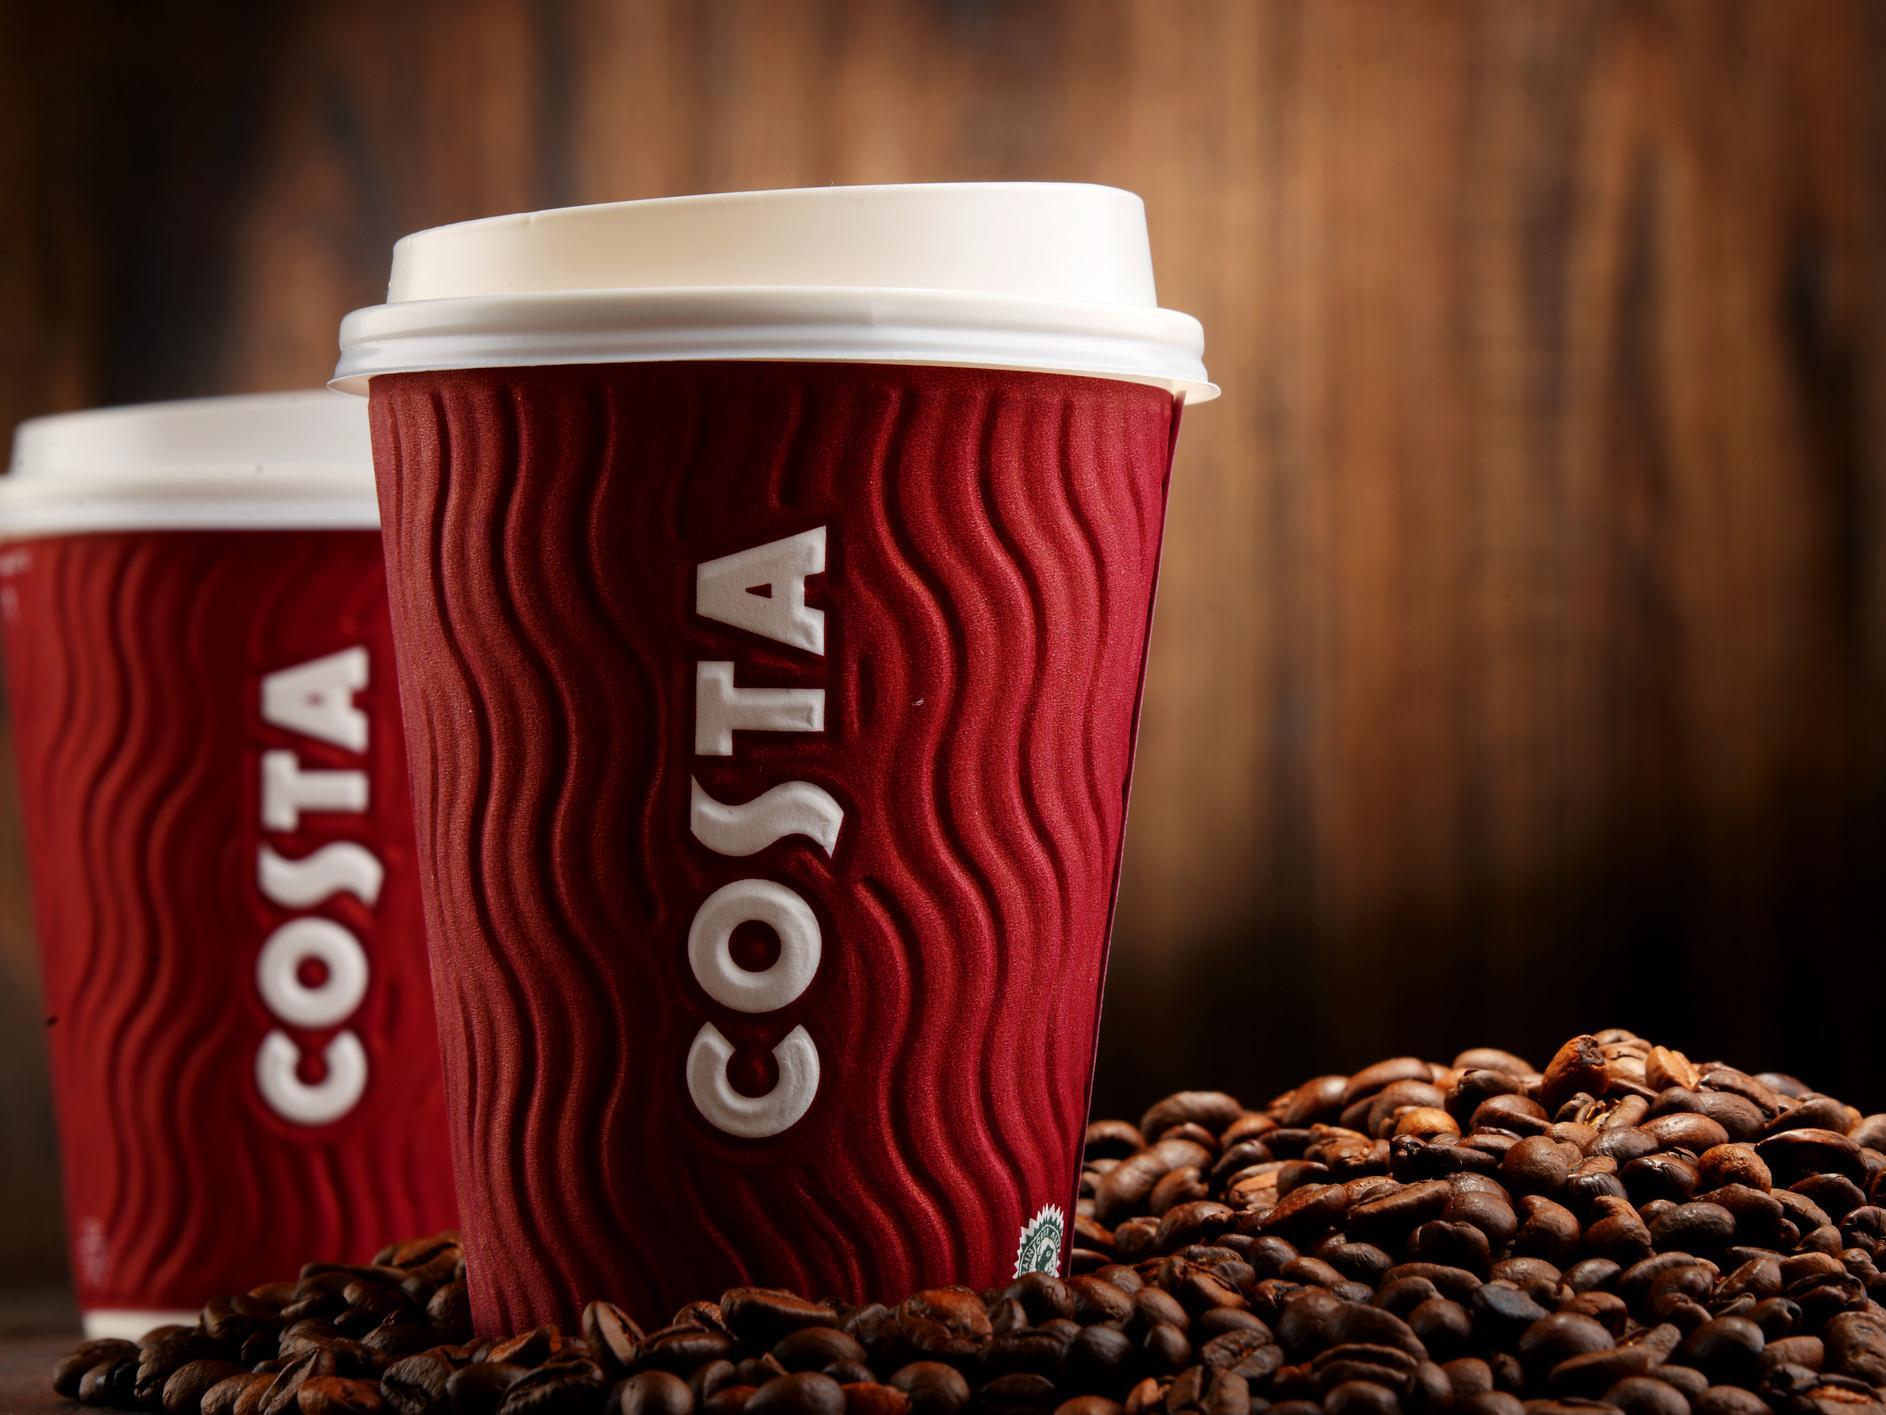 Costa customers disappointed as vending machines run out after chain promises free coffee all day 1